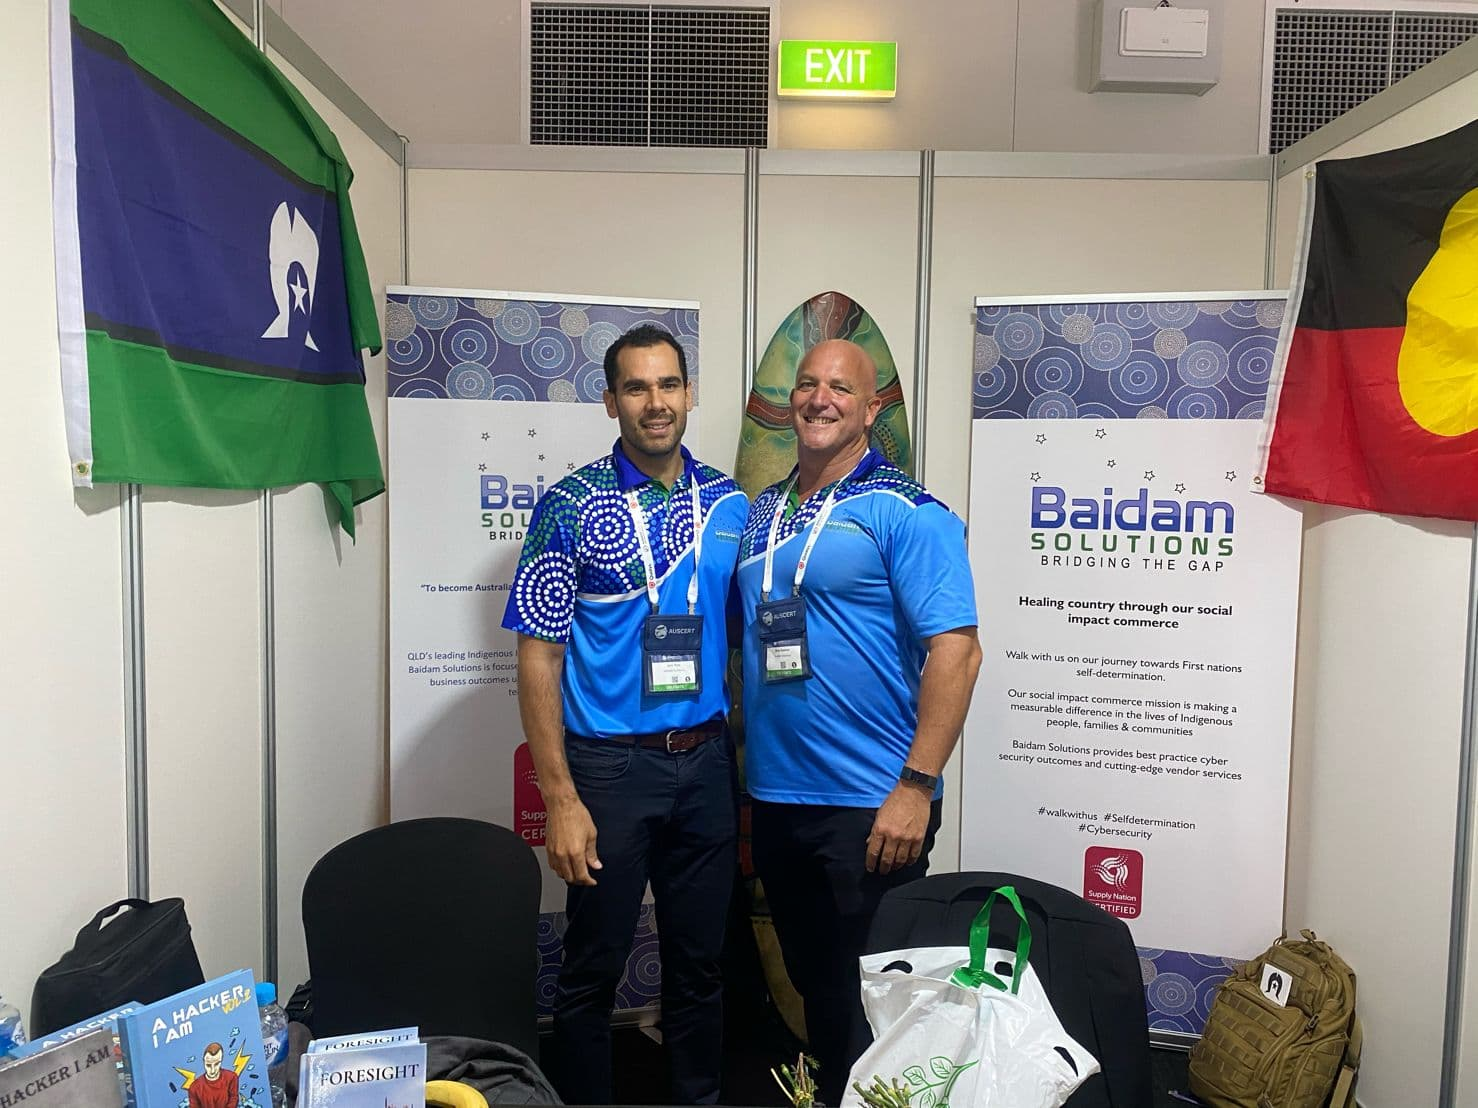 Baidam Co-Founder Jack Reis with National Indigenous Corporate Affairs Manager Nick Buenen